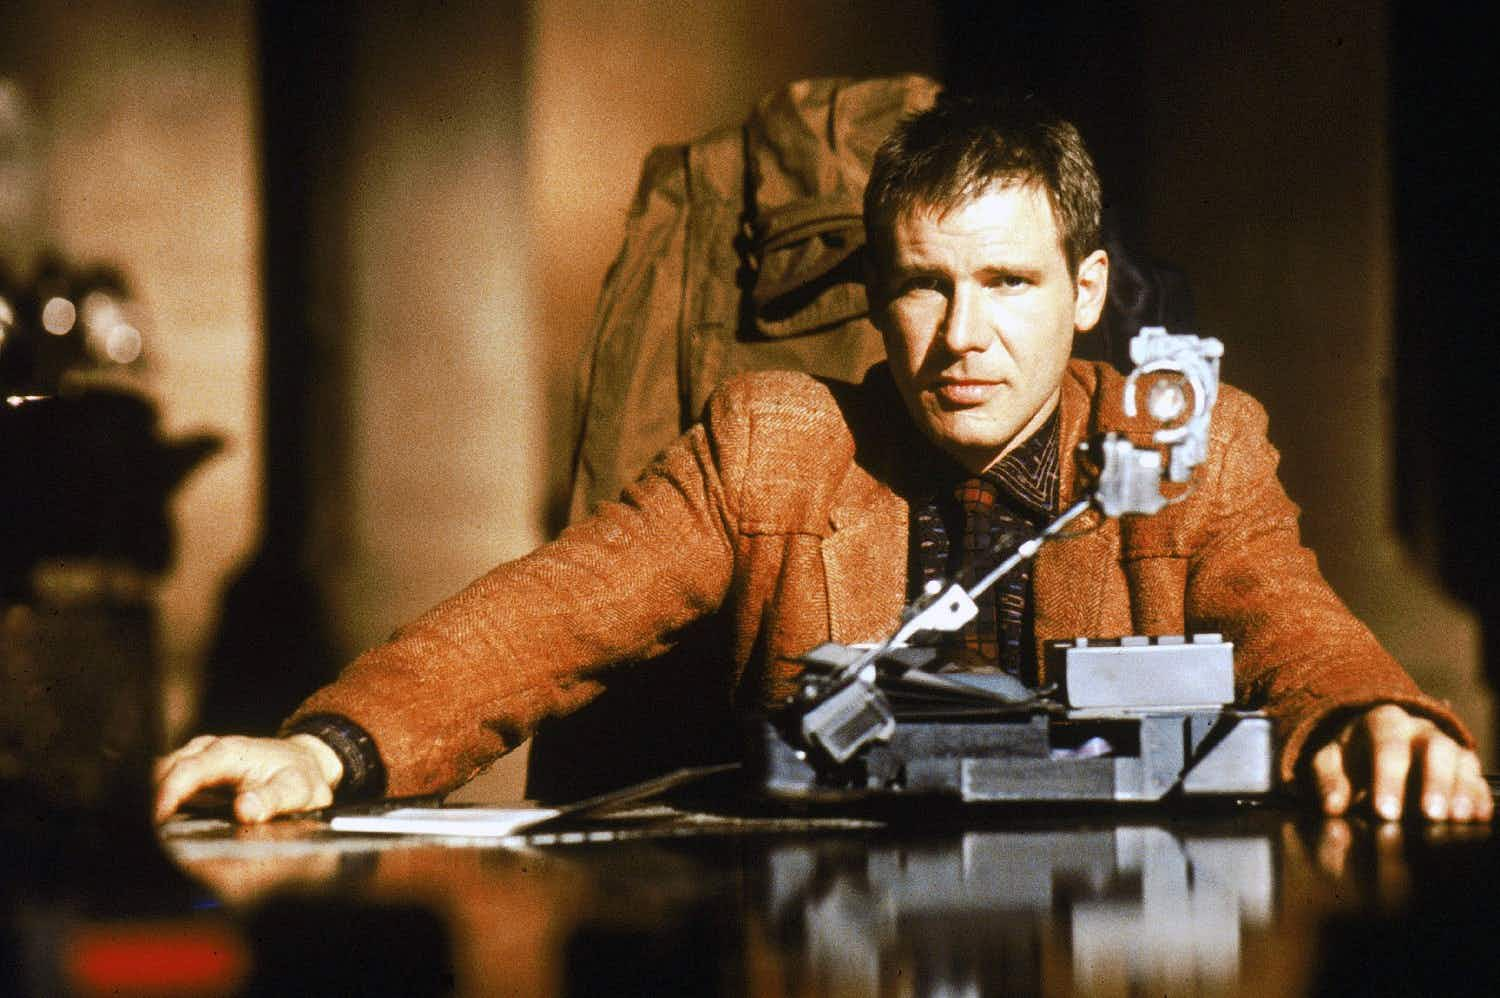 A Blade Runner-themed pop-up bar opens in Melbourne this month